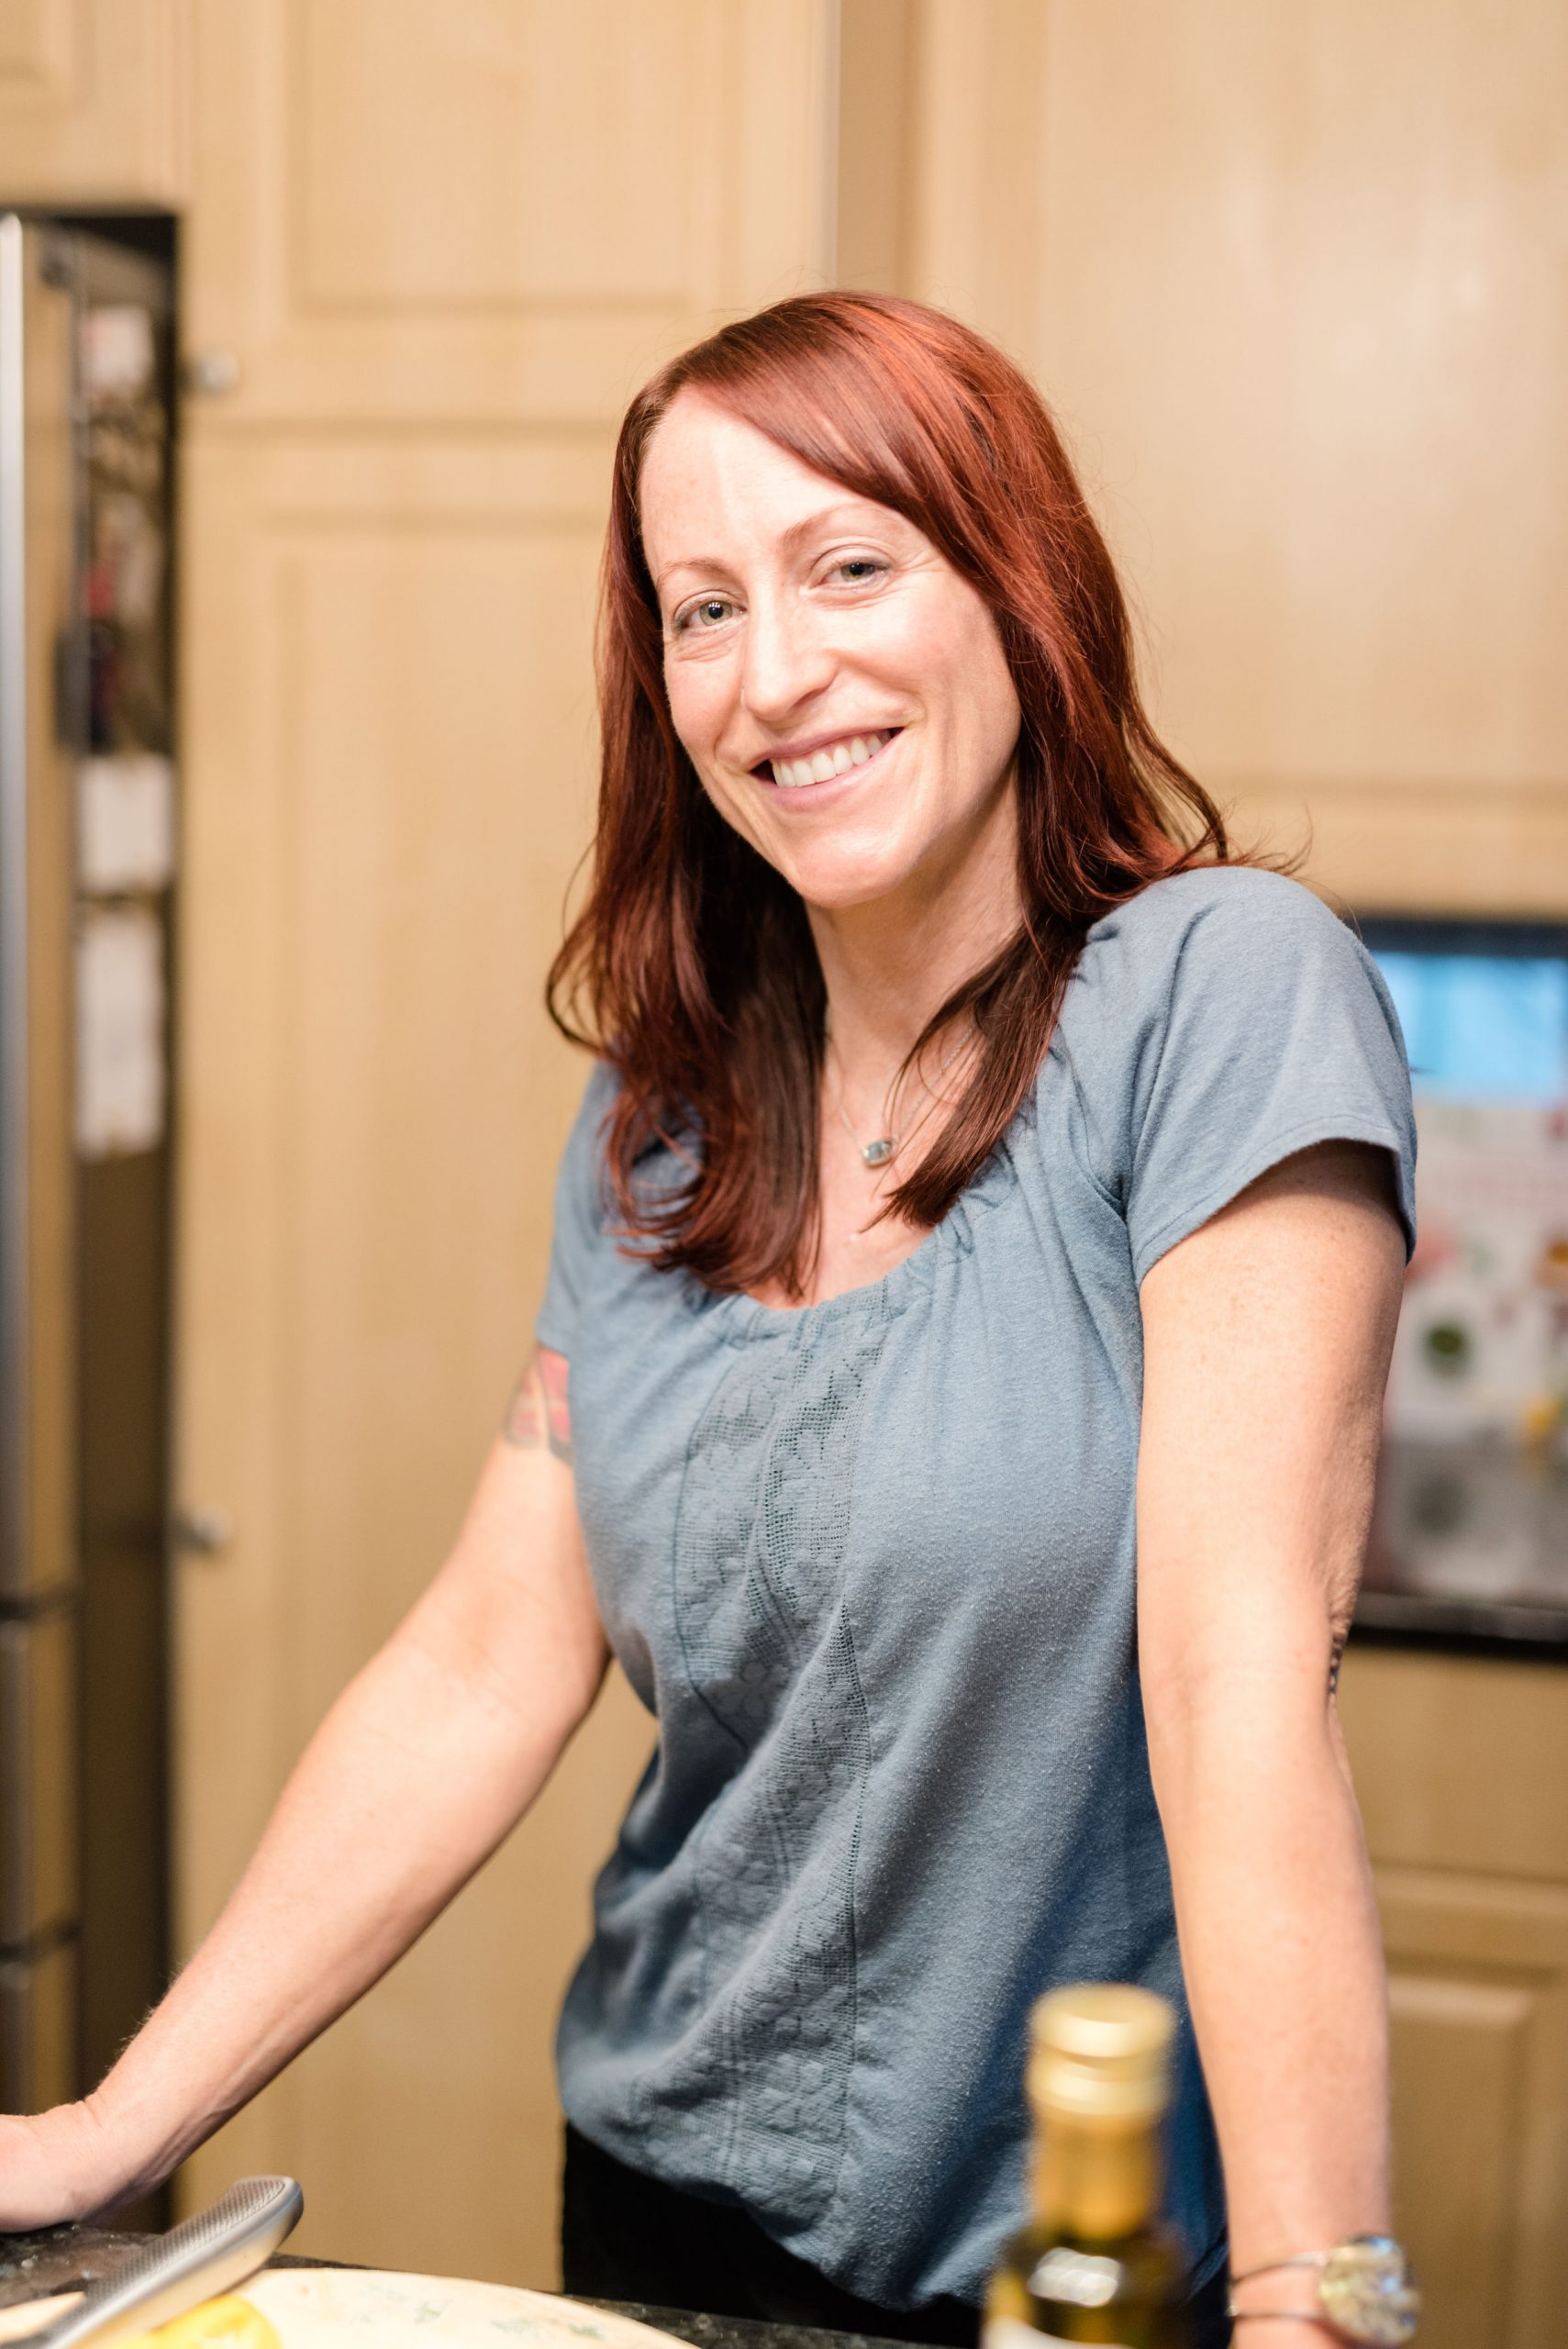 Picture of Maria leaning on kitchen counter